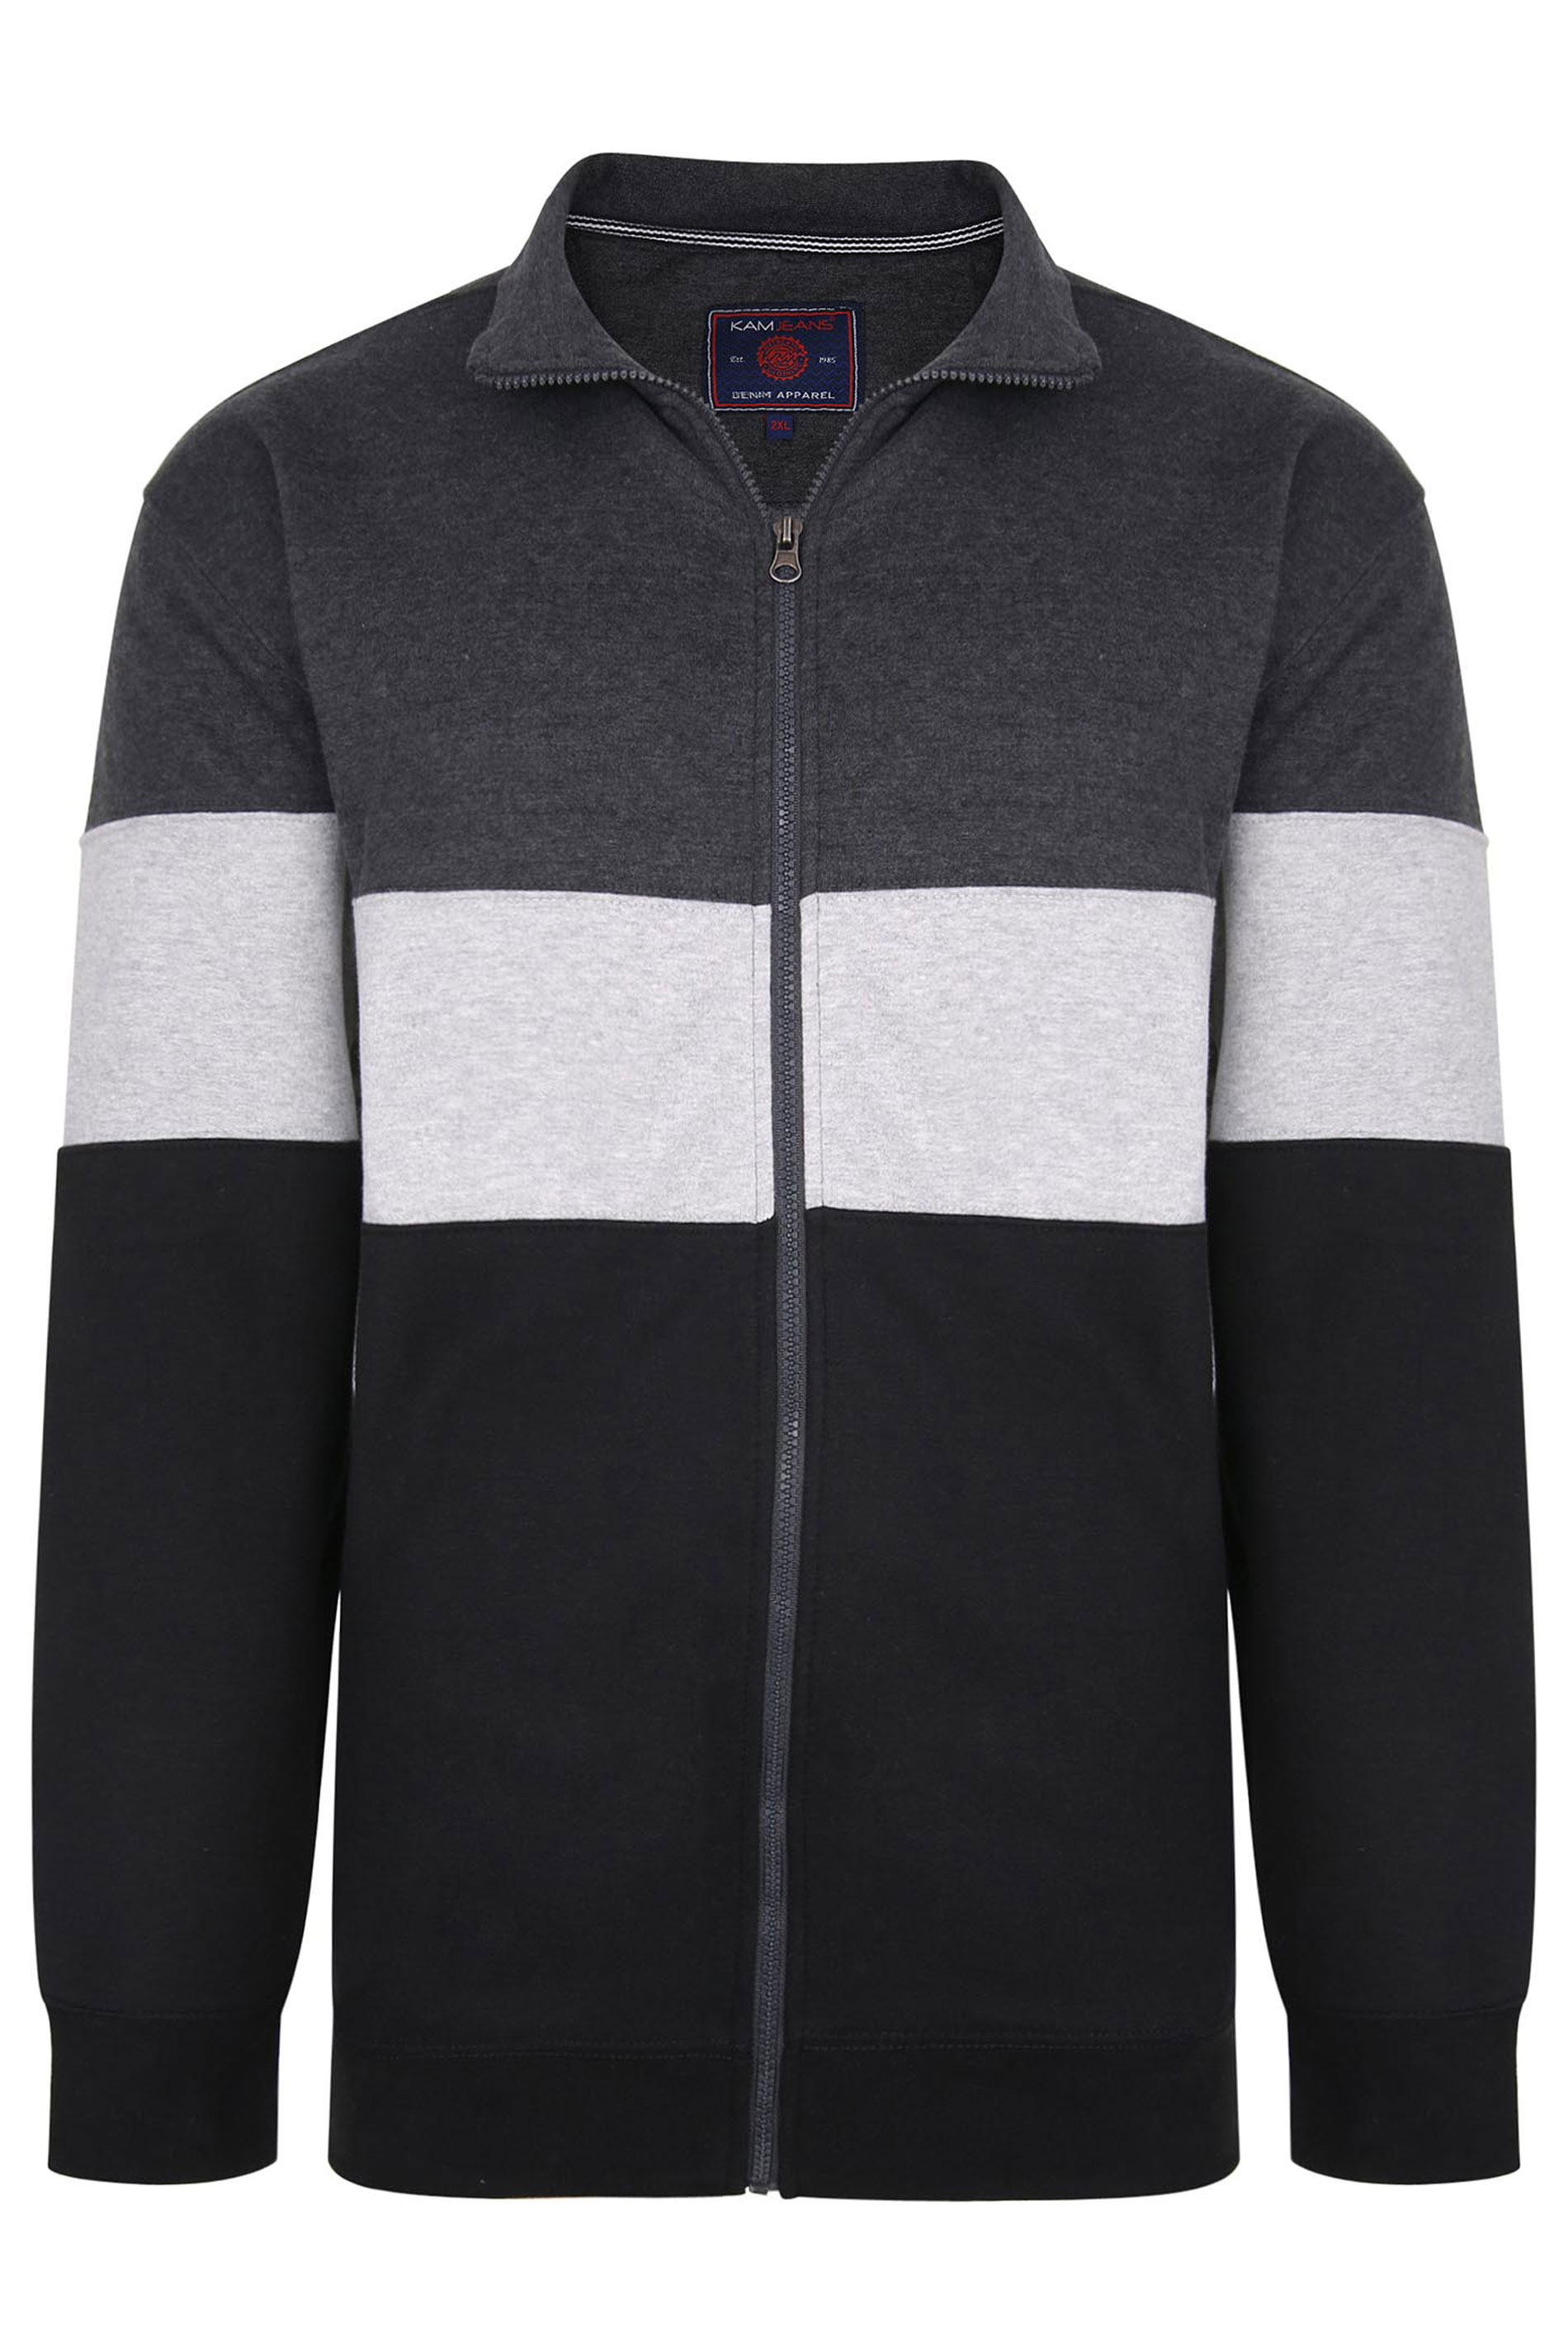 KAM Grey Colour Block Zip Sweatshirt